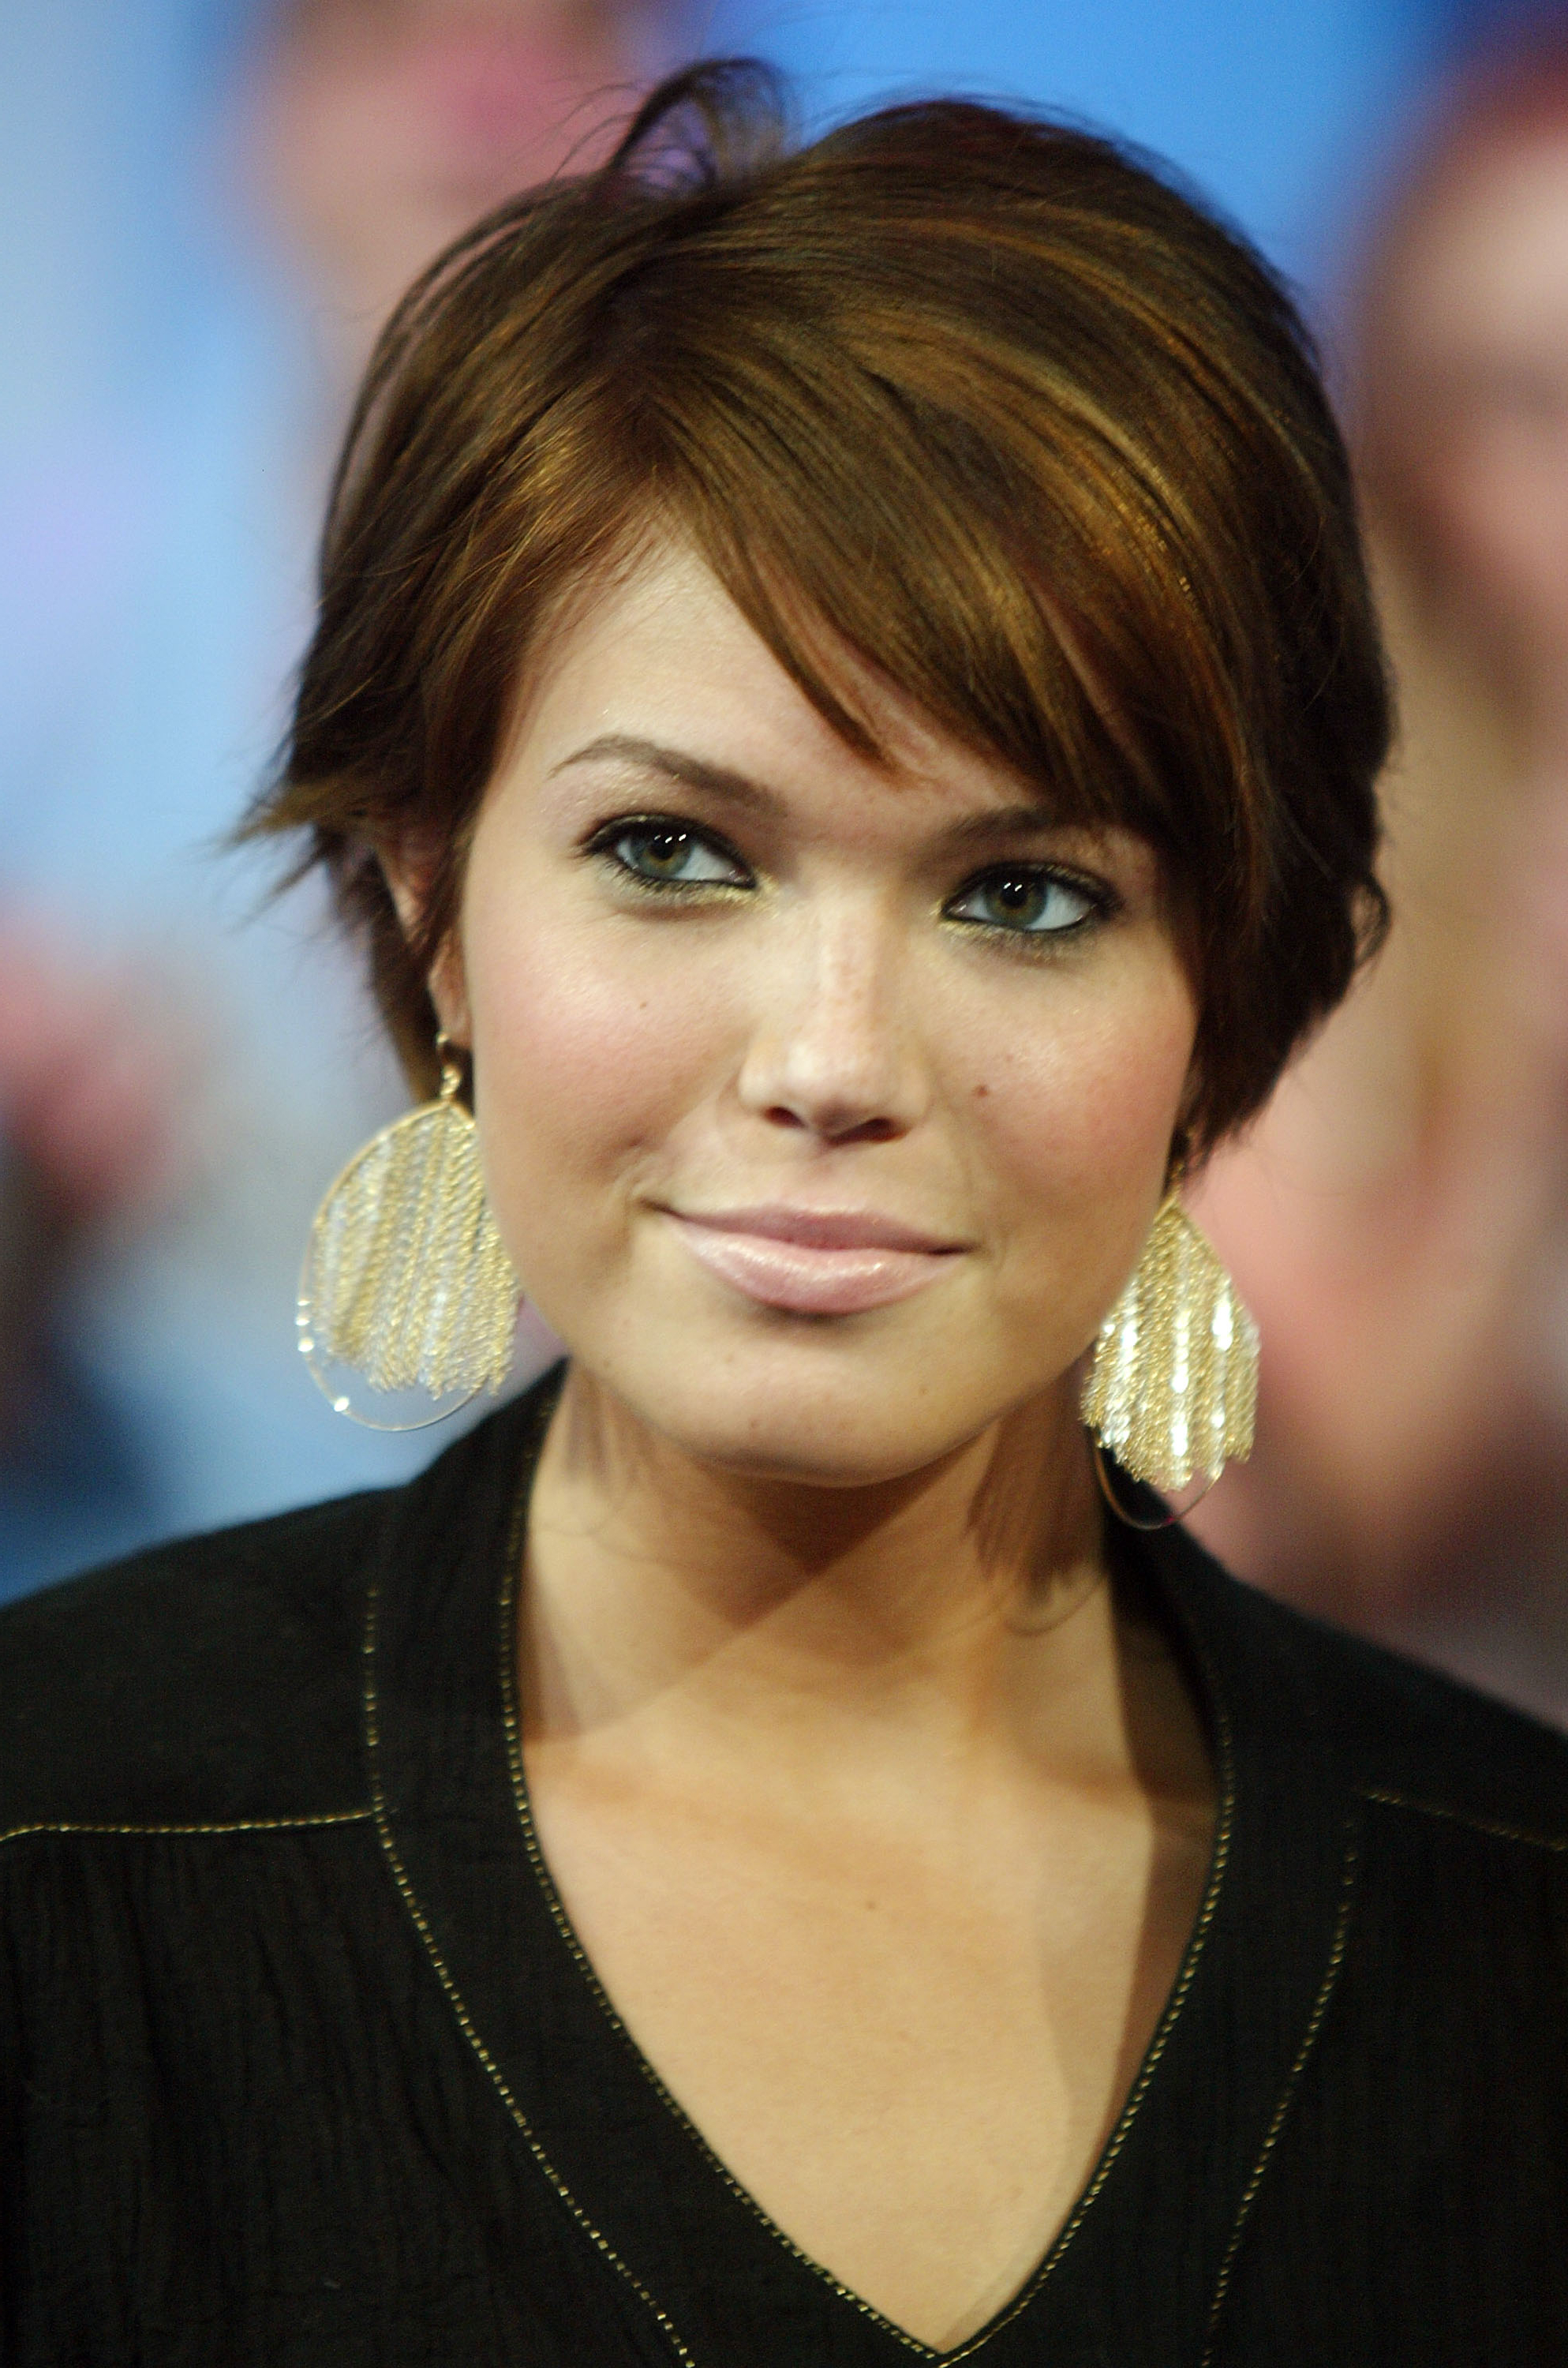 Short Trendy Hairstyles For Fine Hair – Hairstyle For Women & Man Inside Trendy Short Hairstyles For Thin Hair (View 25 of 25)